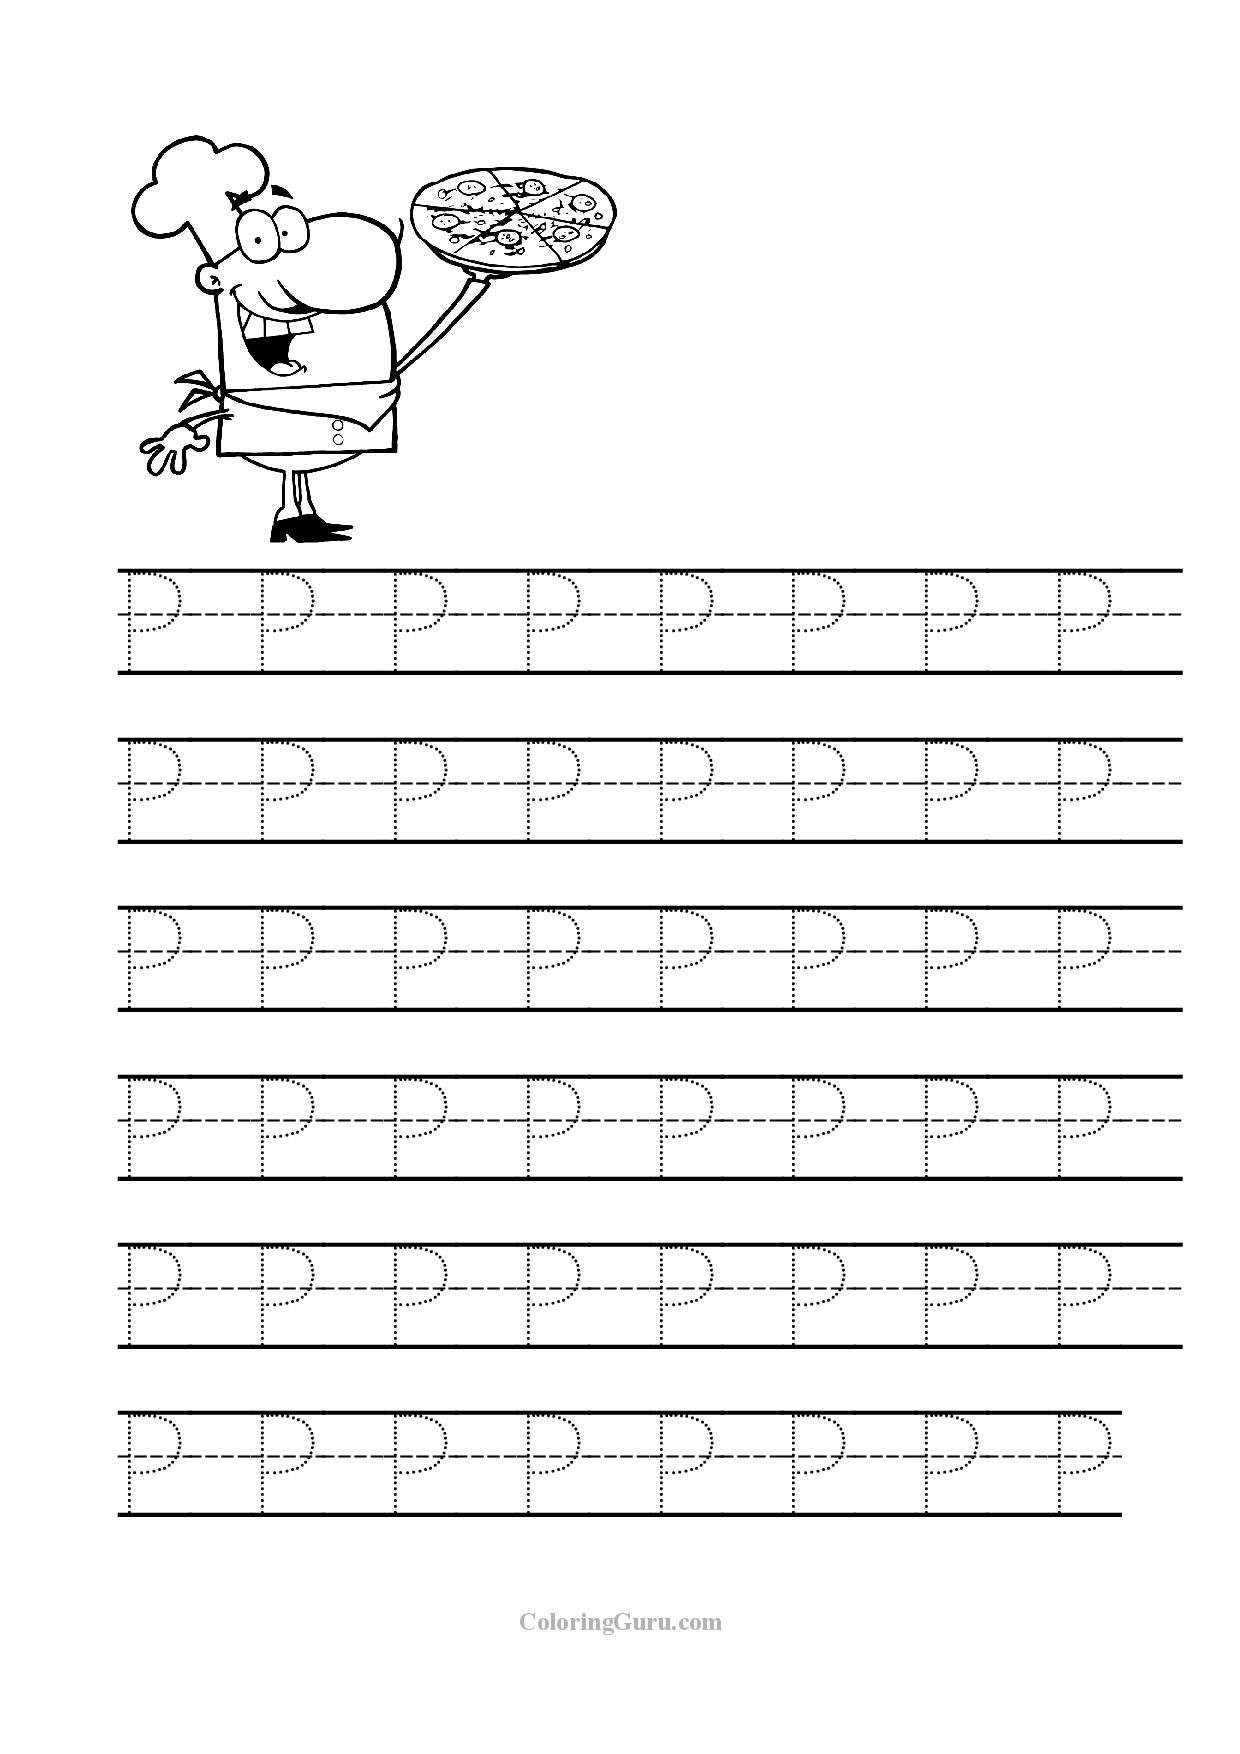 Free Printable Tracing Letter P Worksheets For Preschool regarding Action Alphabet Tracing Letters